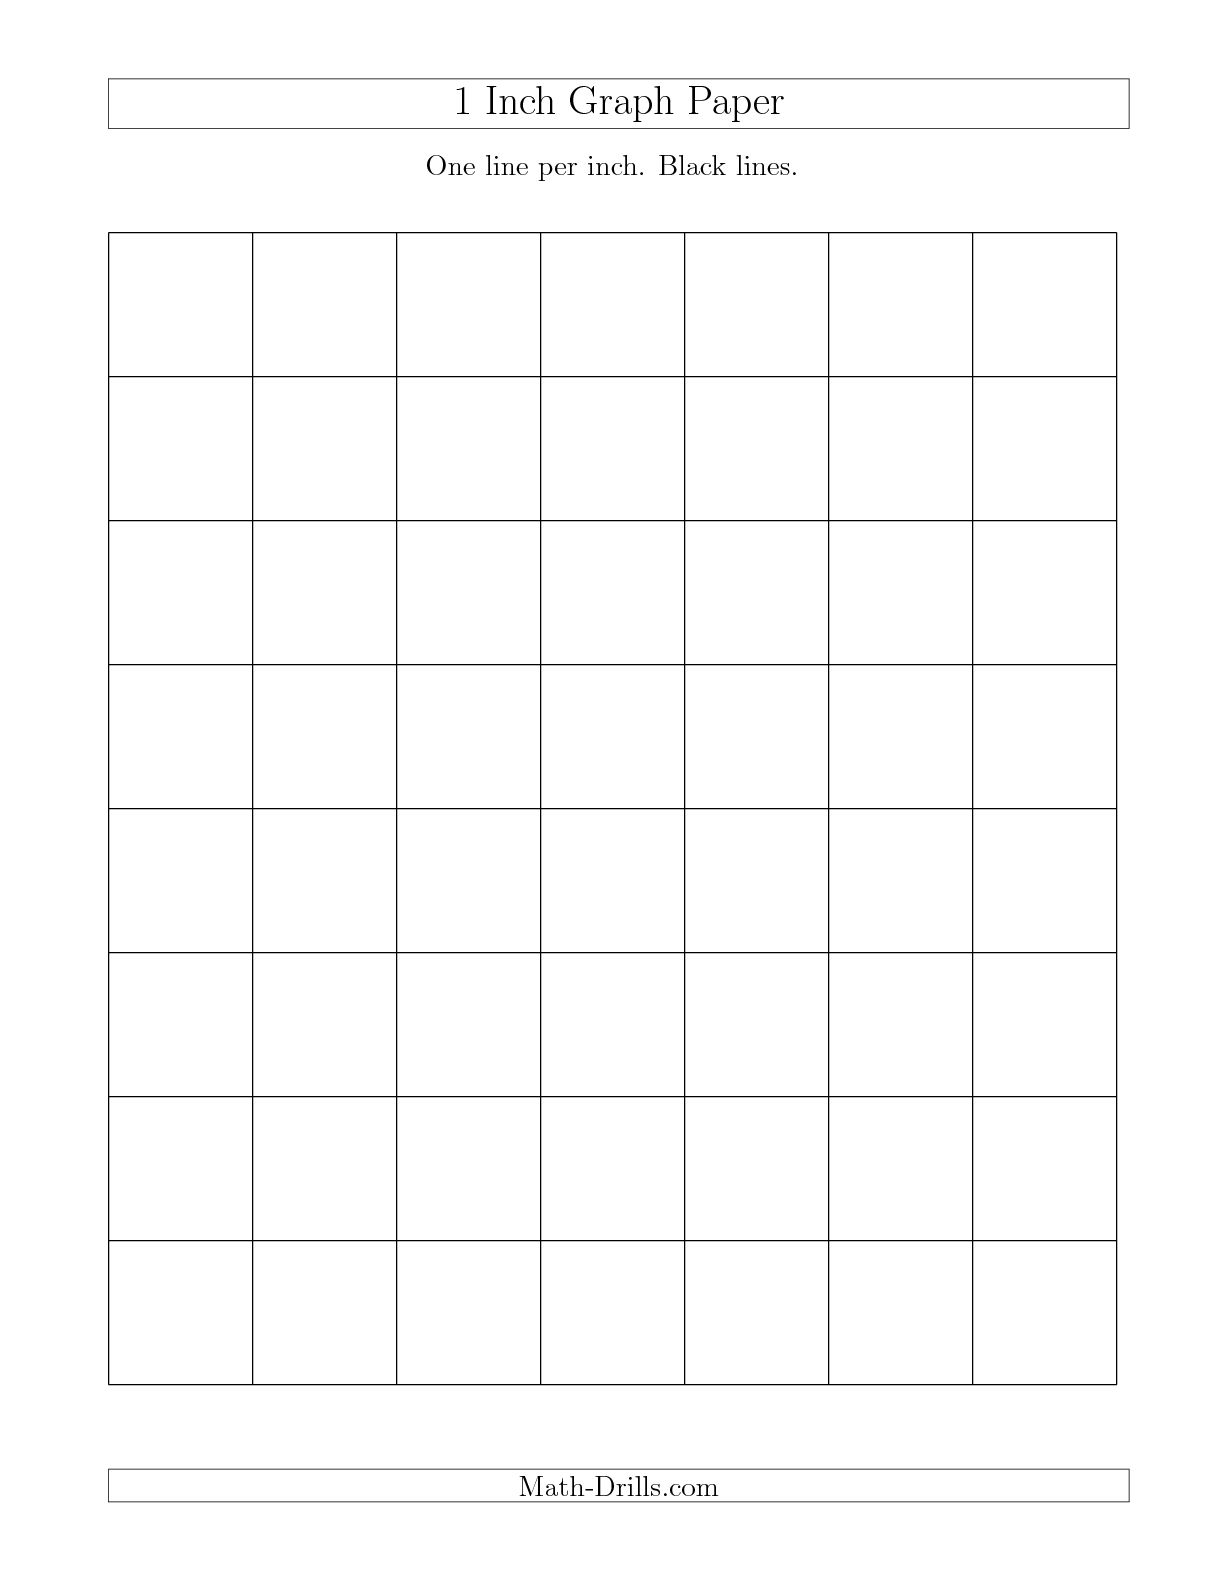 Printable Graph Paper and Grid Paper | Woo! Jr. Kids Activities